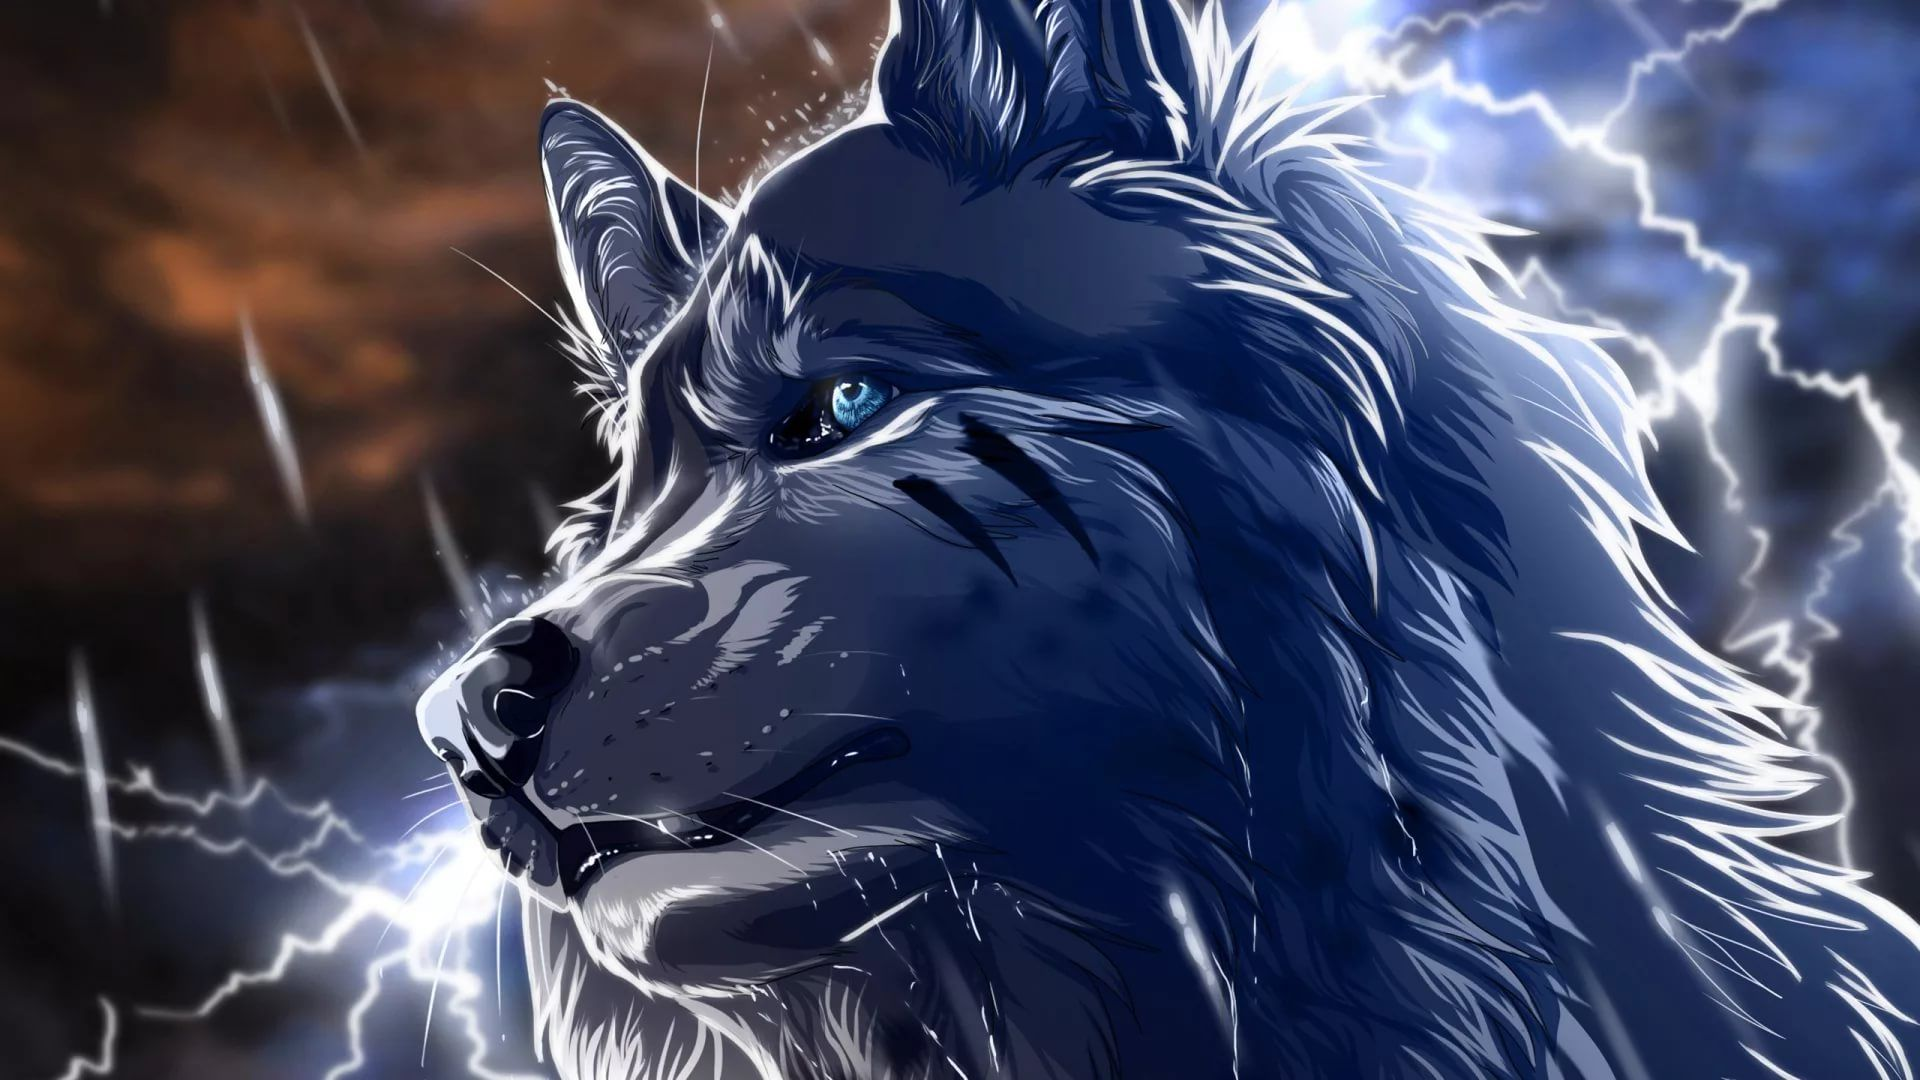 Cool Wolf Wallpapers 31 images   WallpaperBoat 1920x1080